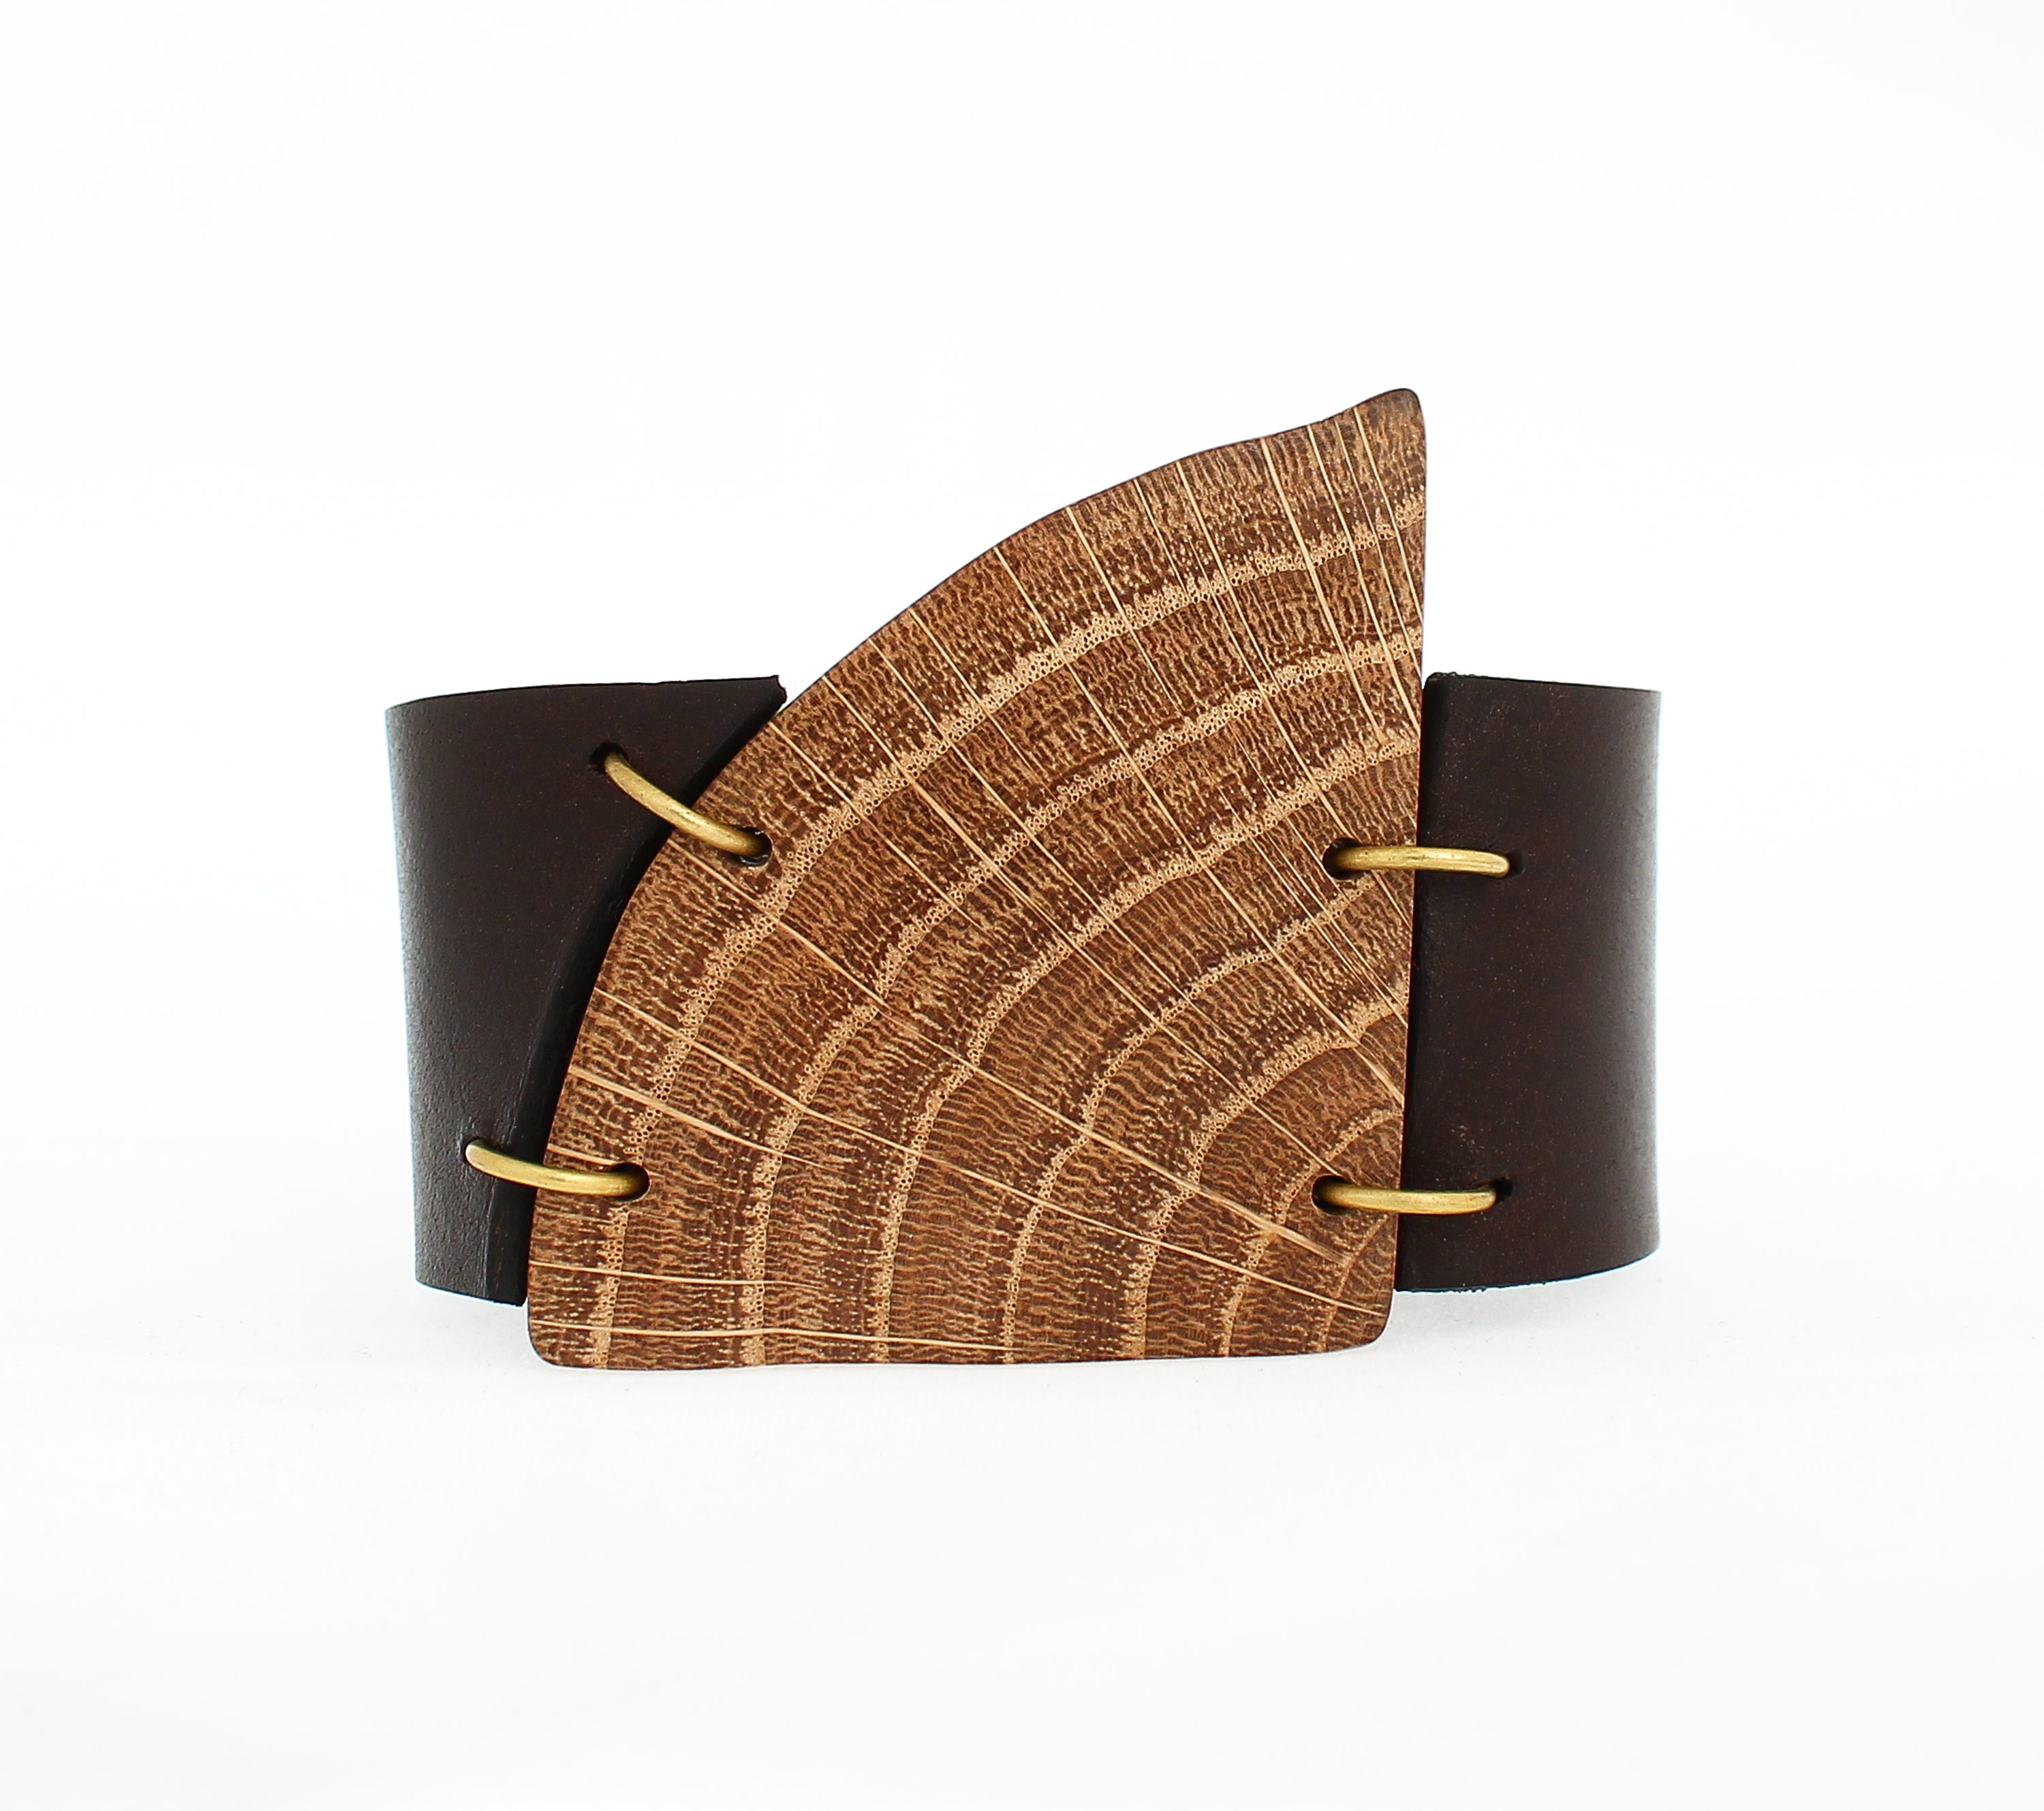 oak leather cuff bracelet